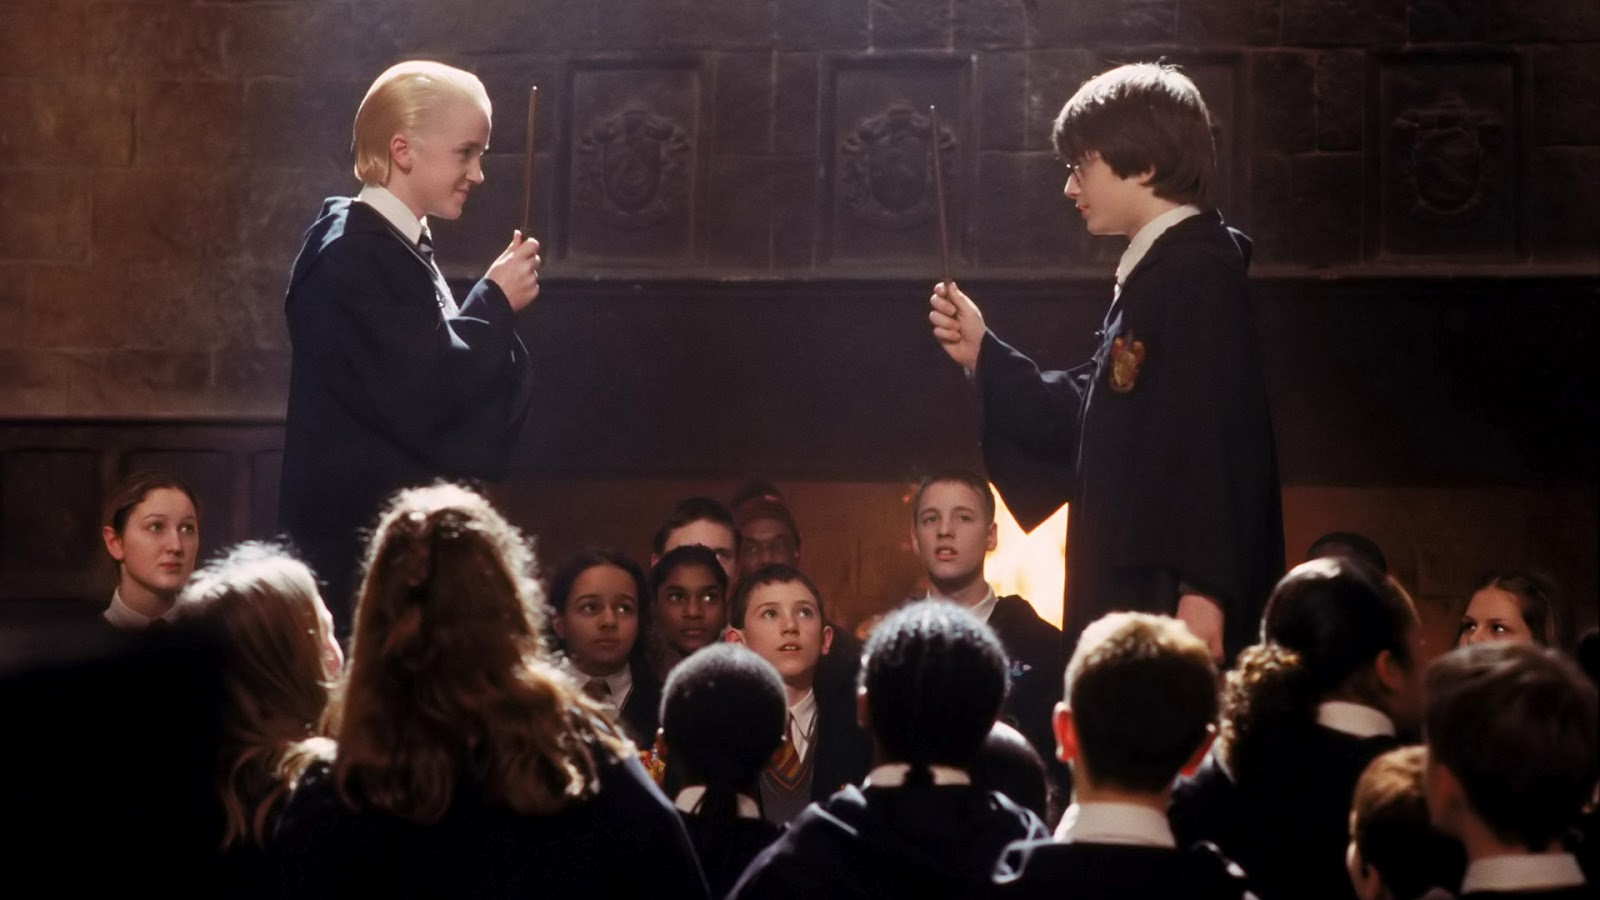 Will Potter and Malfoy finally be best friends?